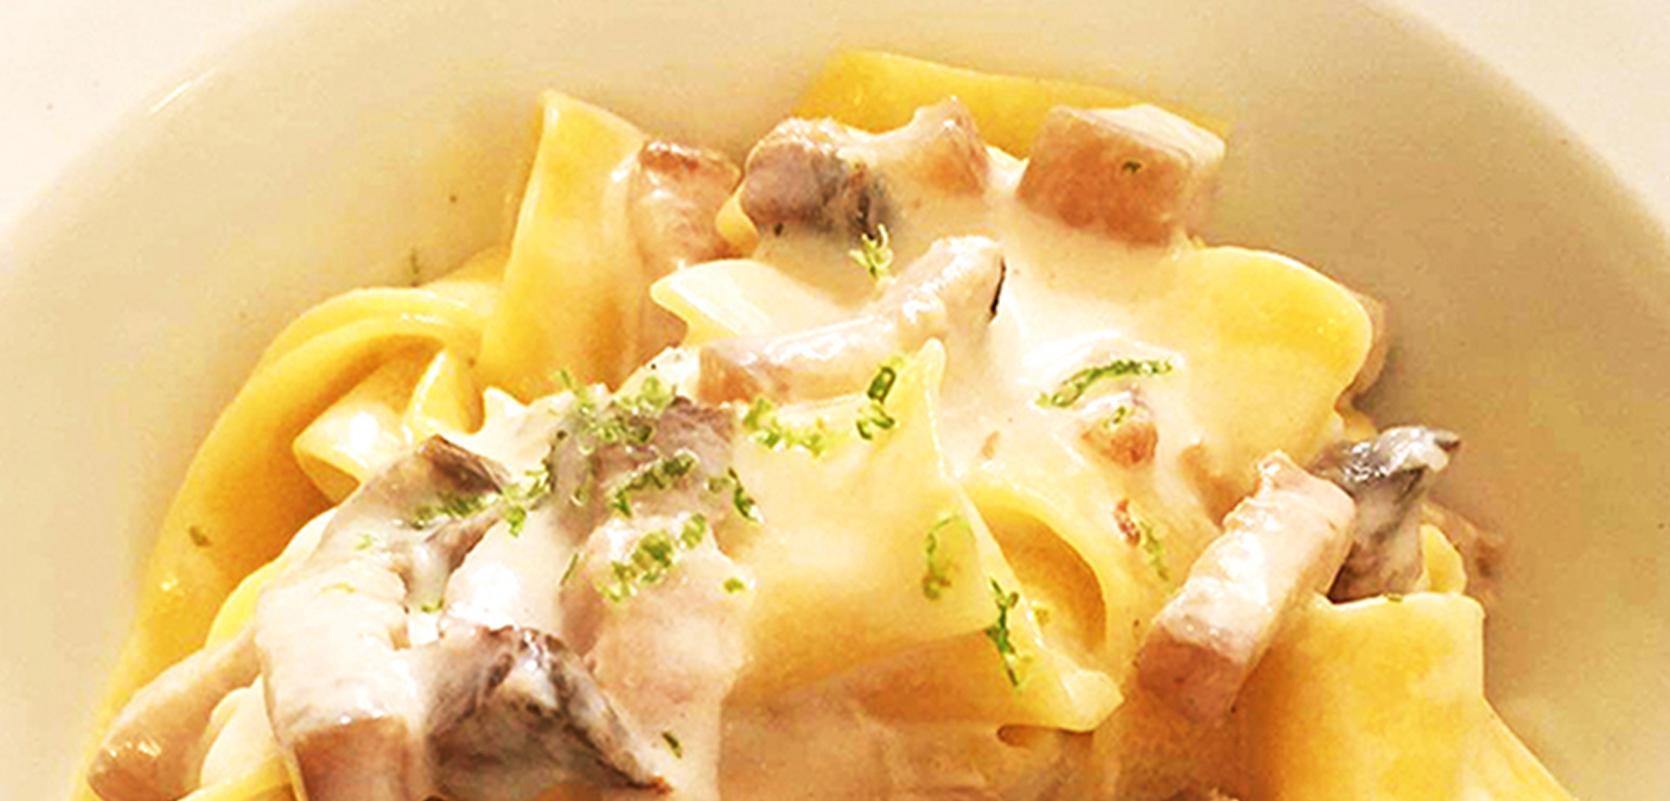 IG_PH_pappardelle_1670_801